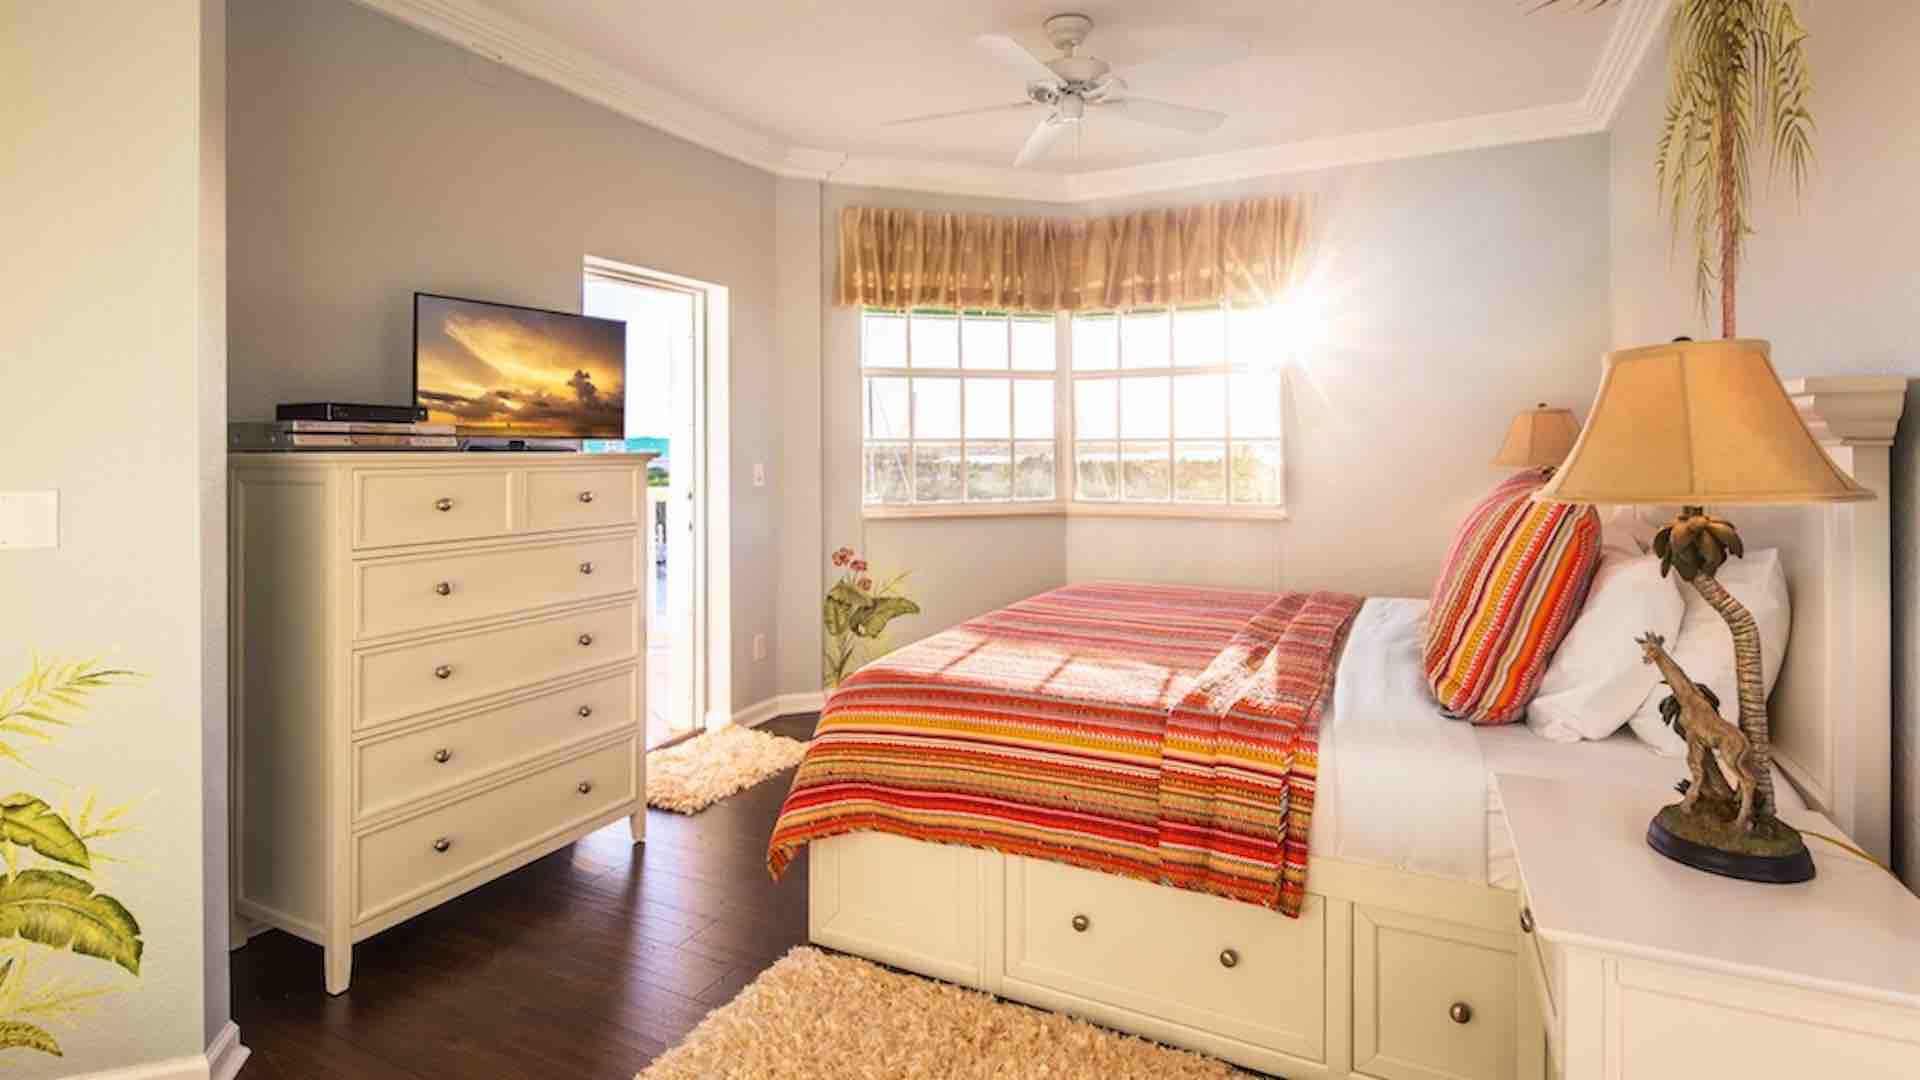 The master bedroom has a King bed, flat screen TV, and balcony access...